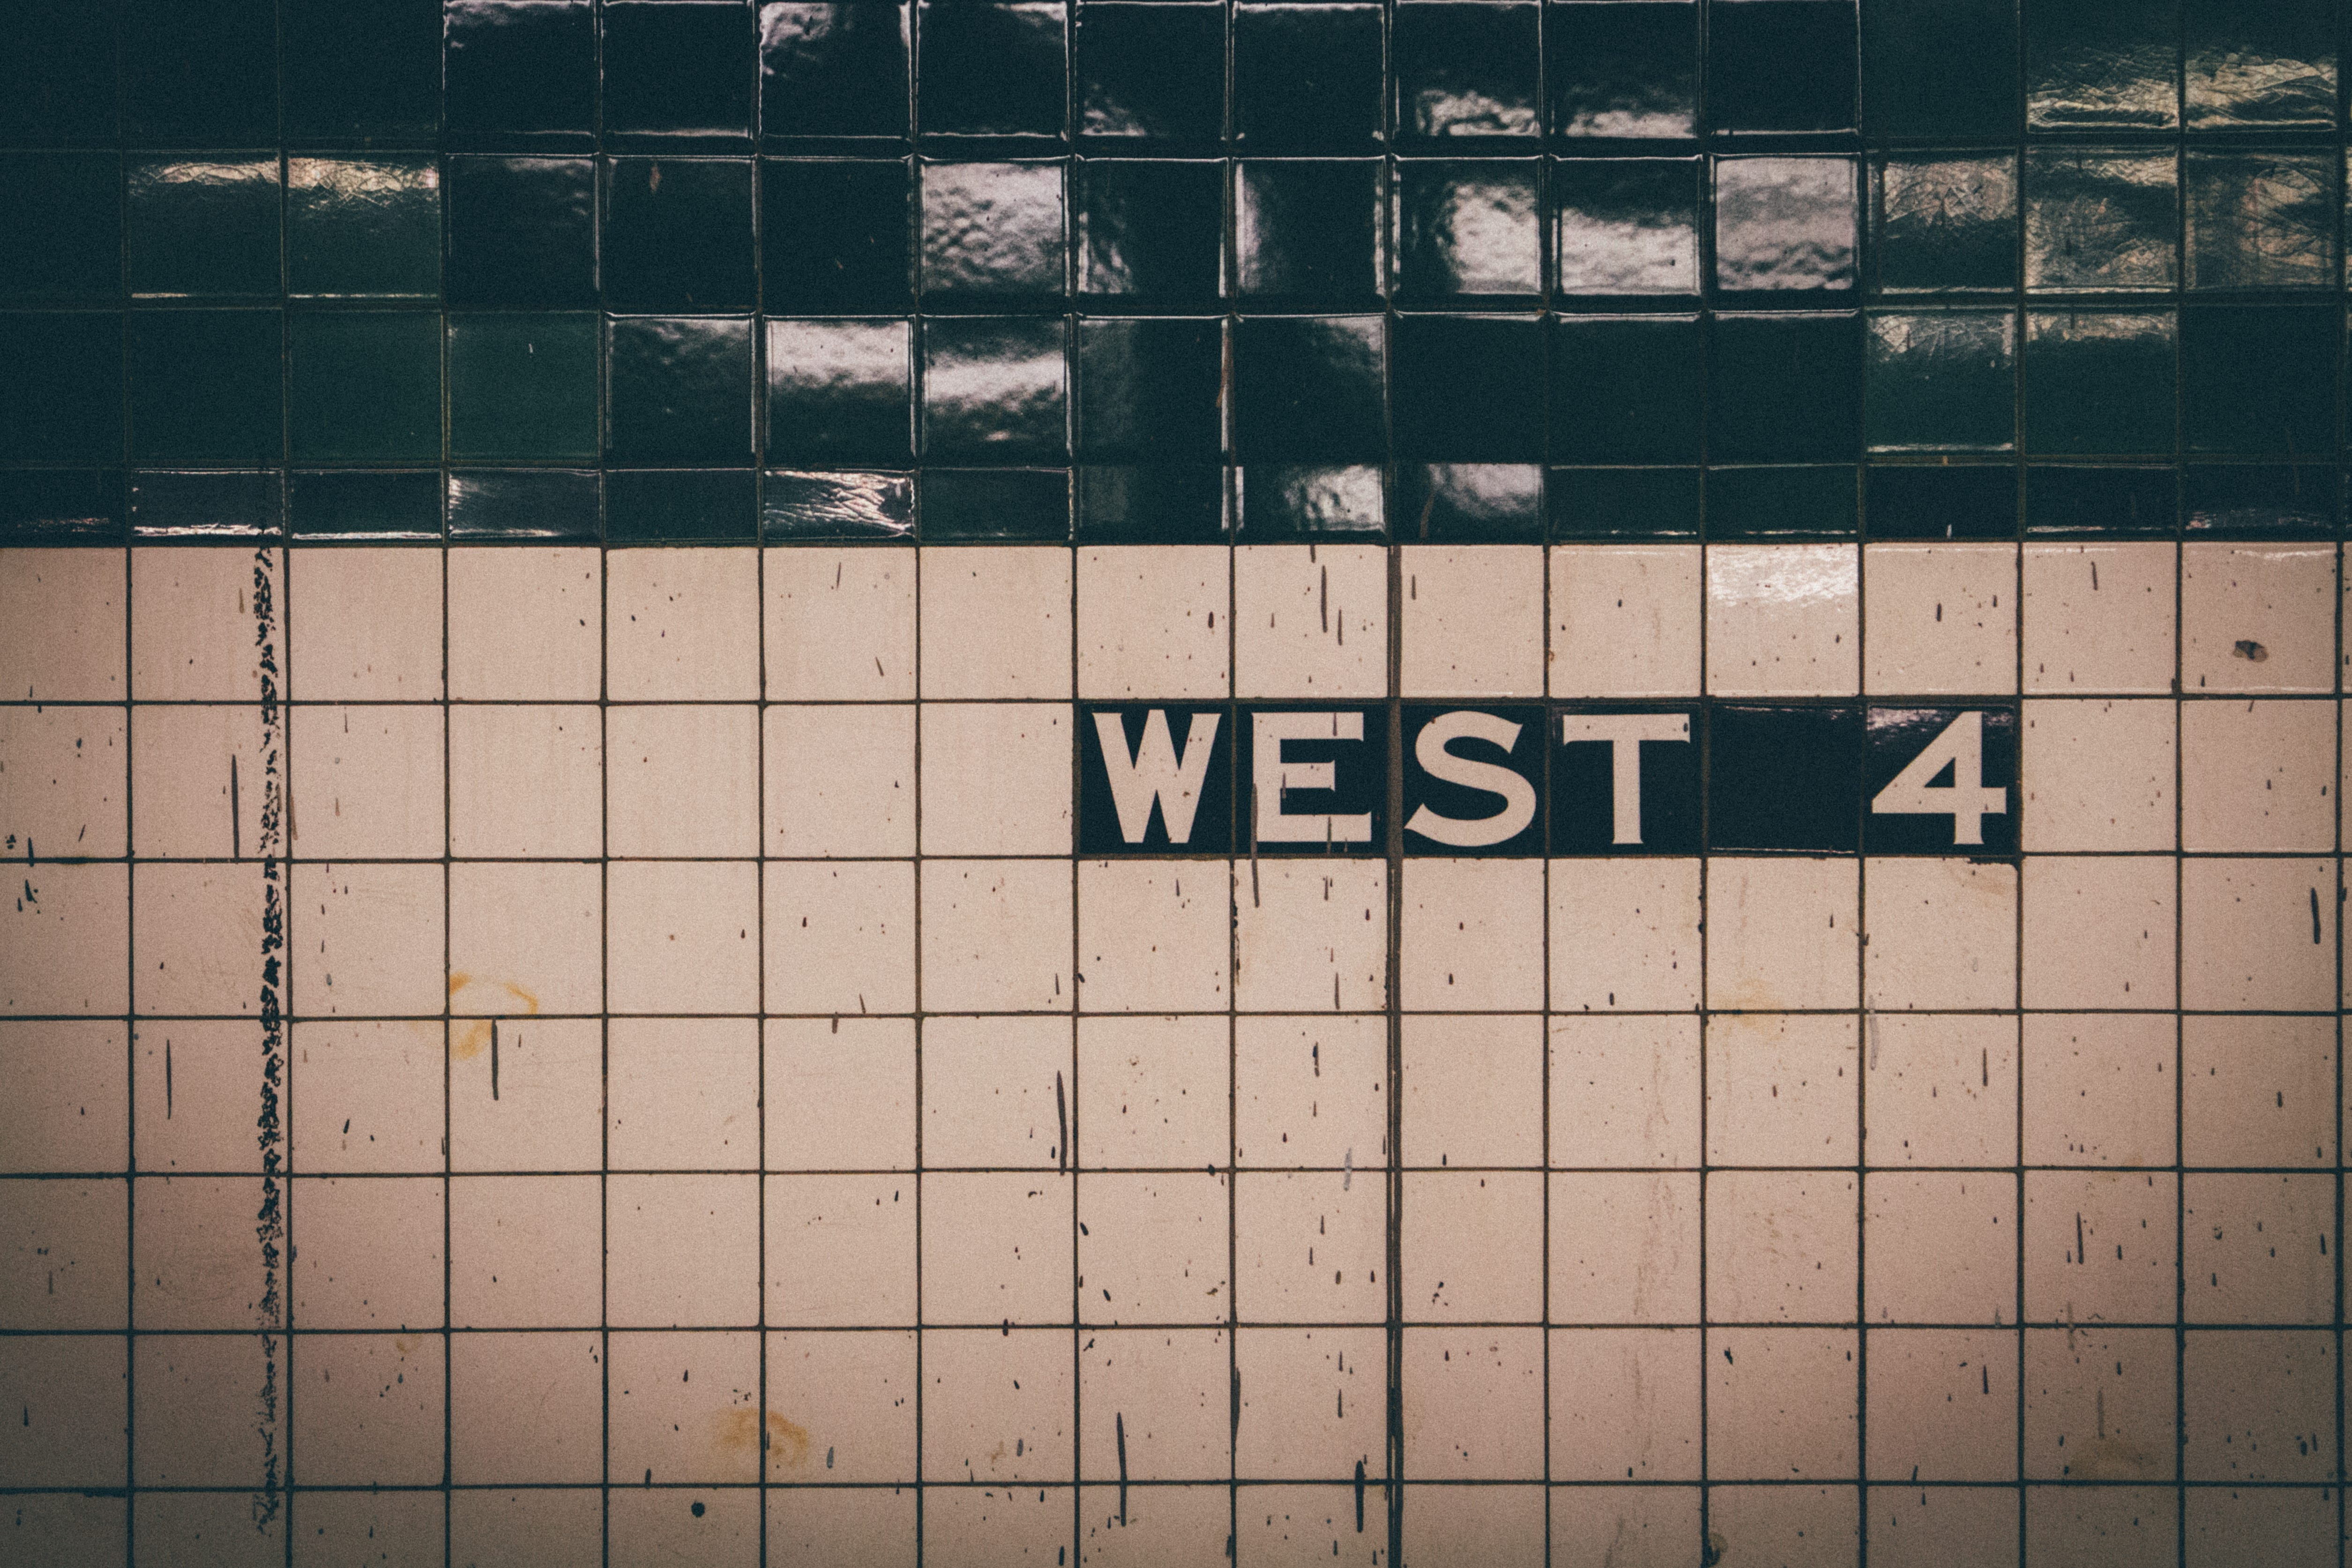 Man slashes rider's hand in Manhattan subway station after asking for money: police